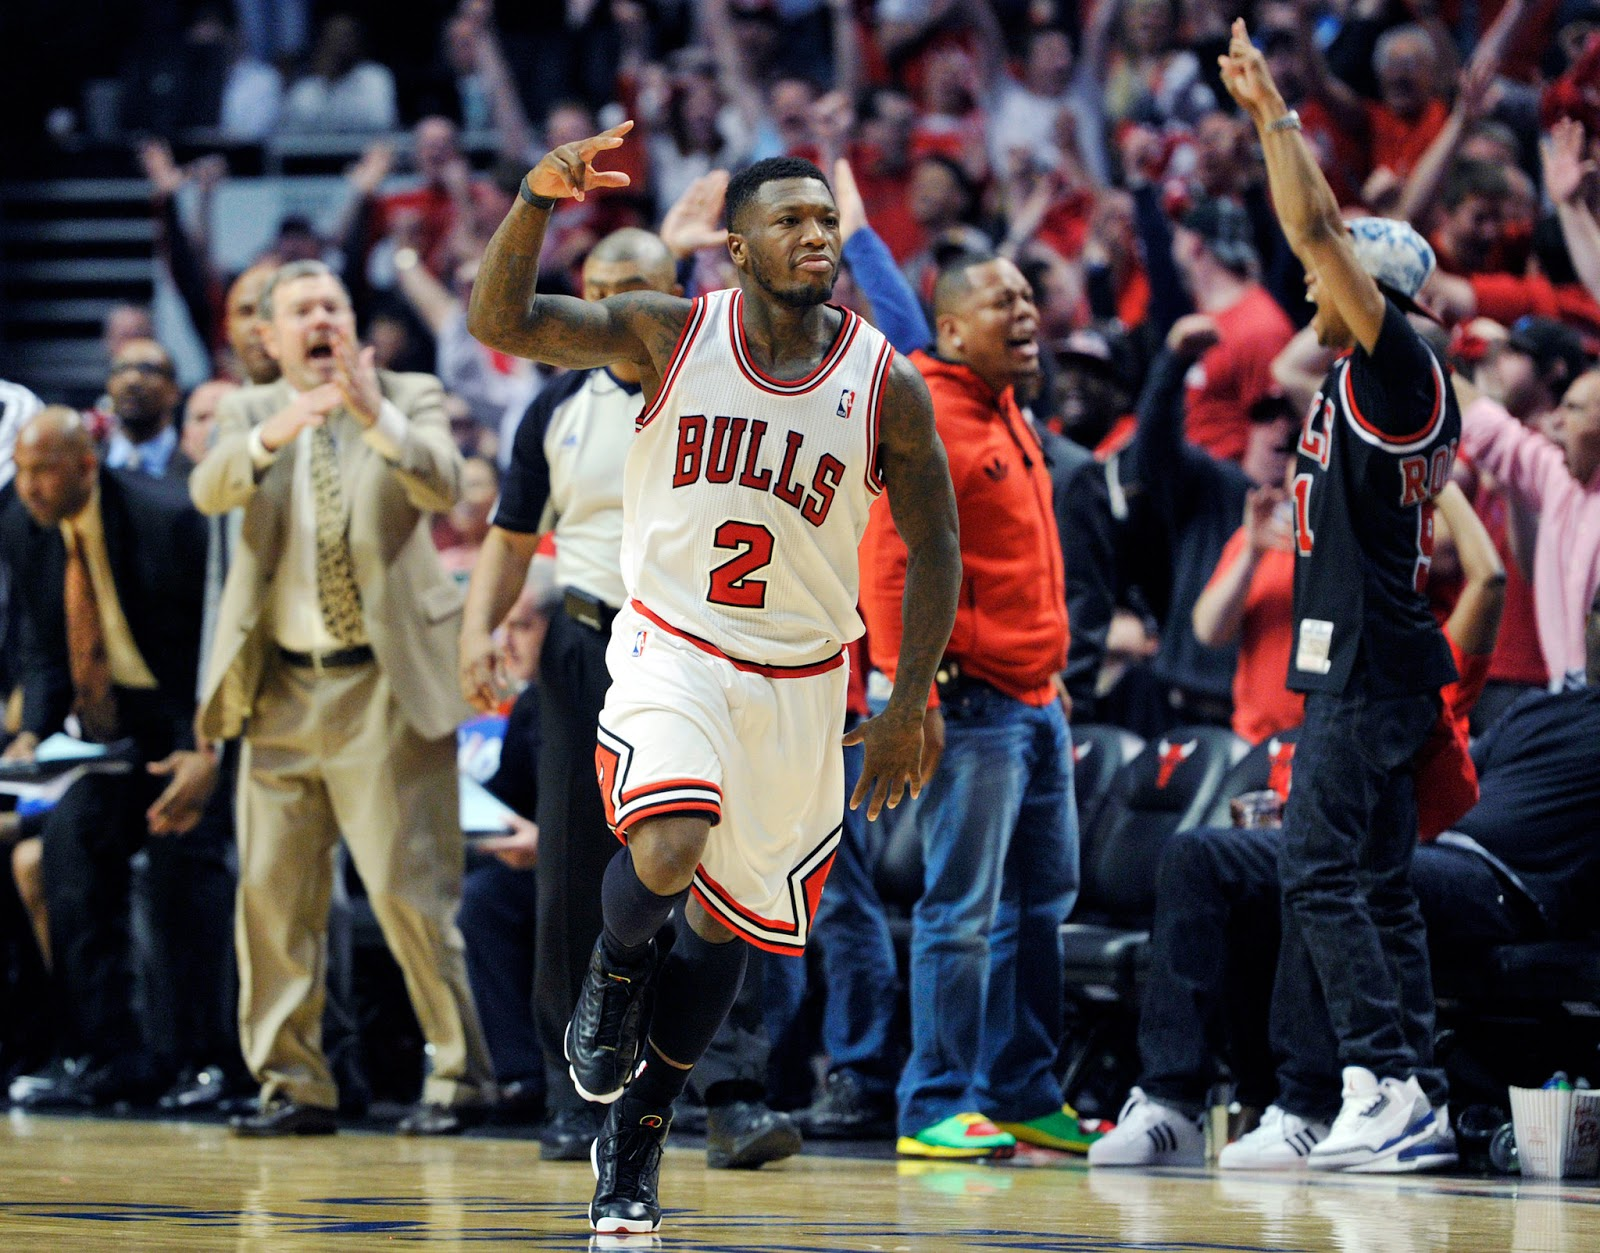 c0d8782d144 Free agent guard Nate Robinson is once again on the move. The high-flying  point guard has agreed to a 2-year contract with the Denver Nuggets